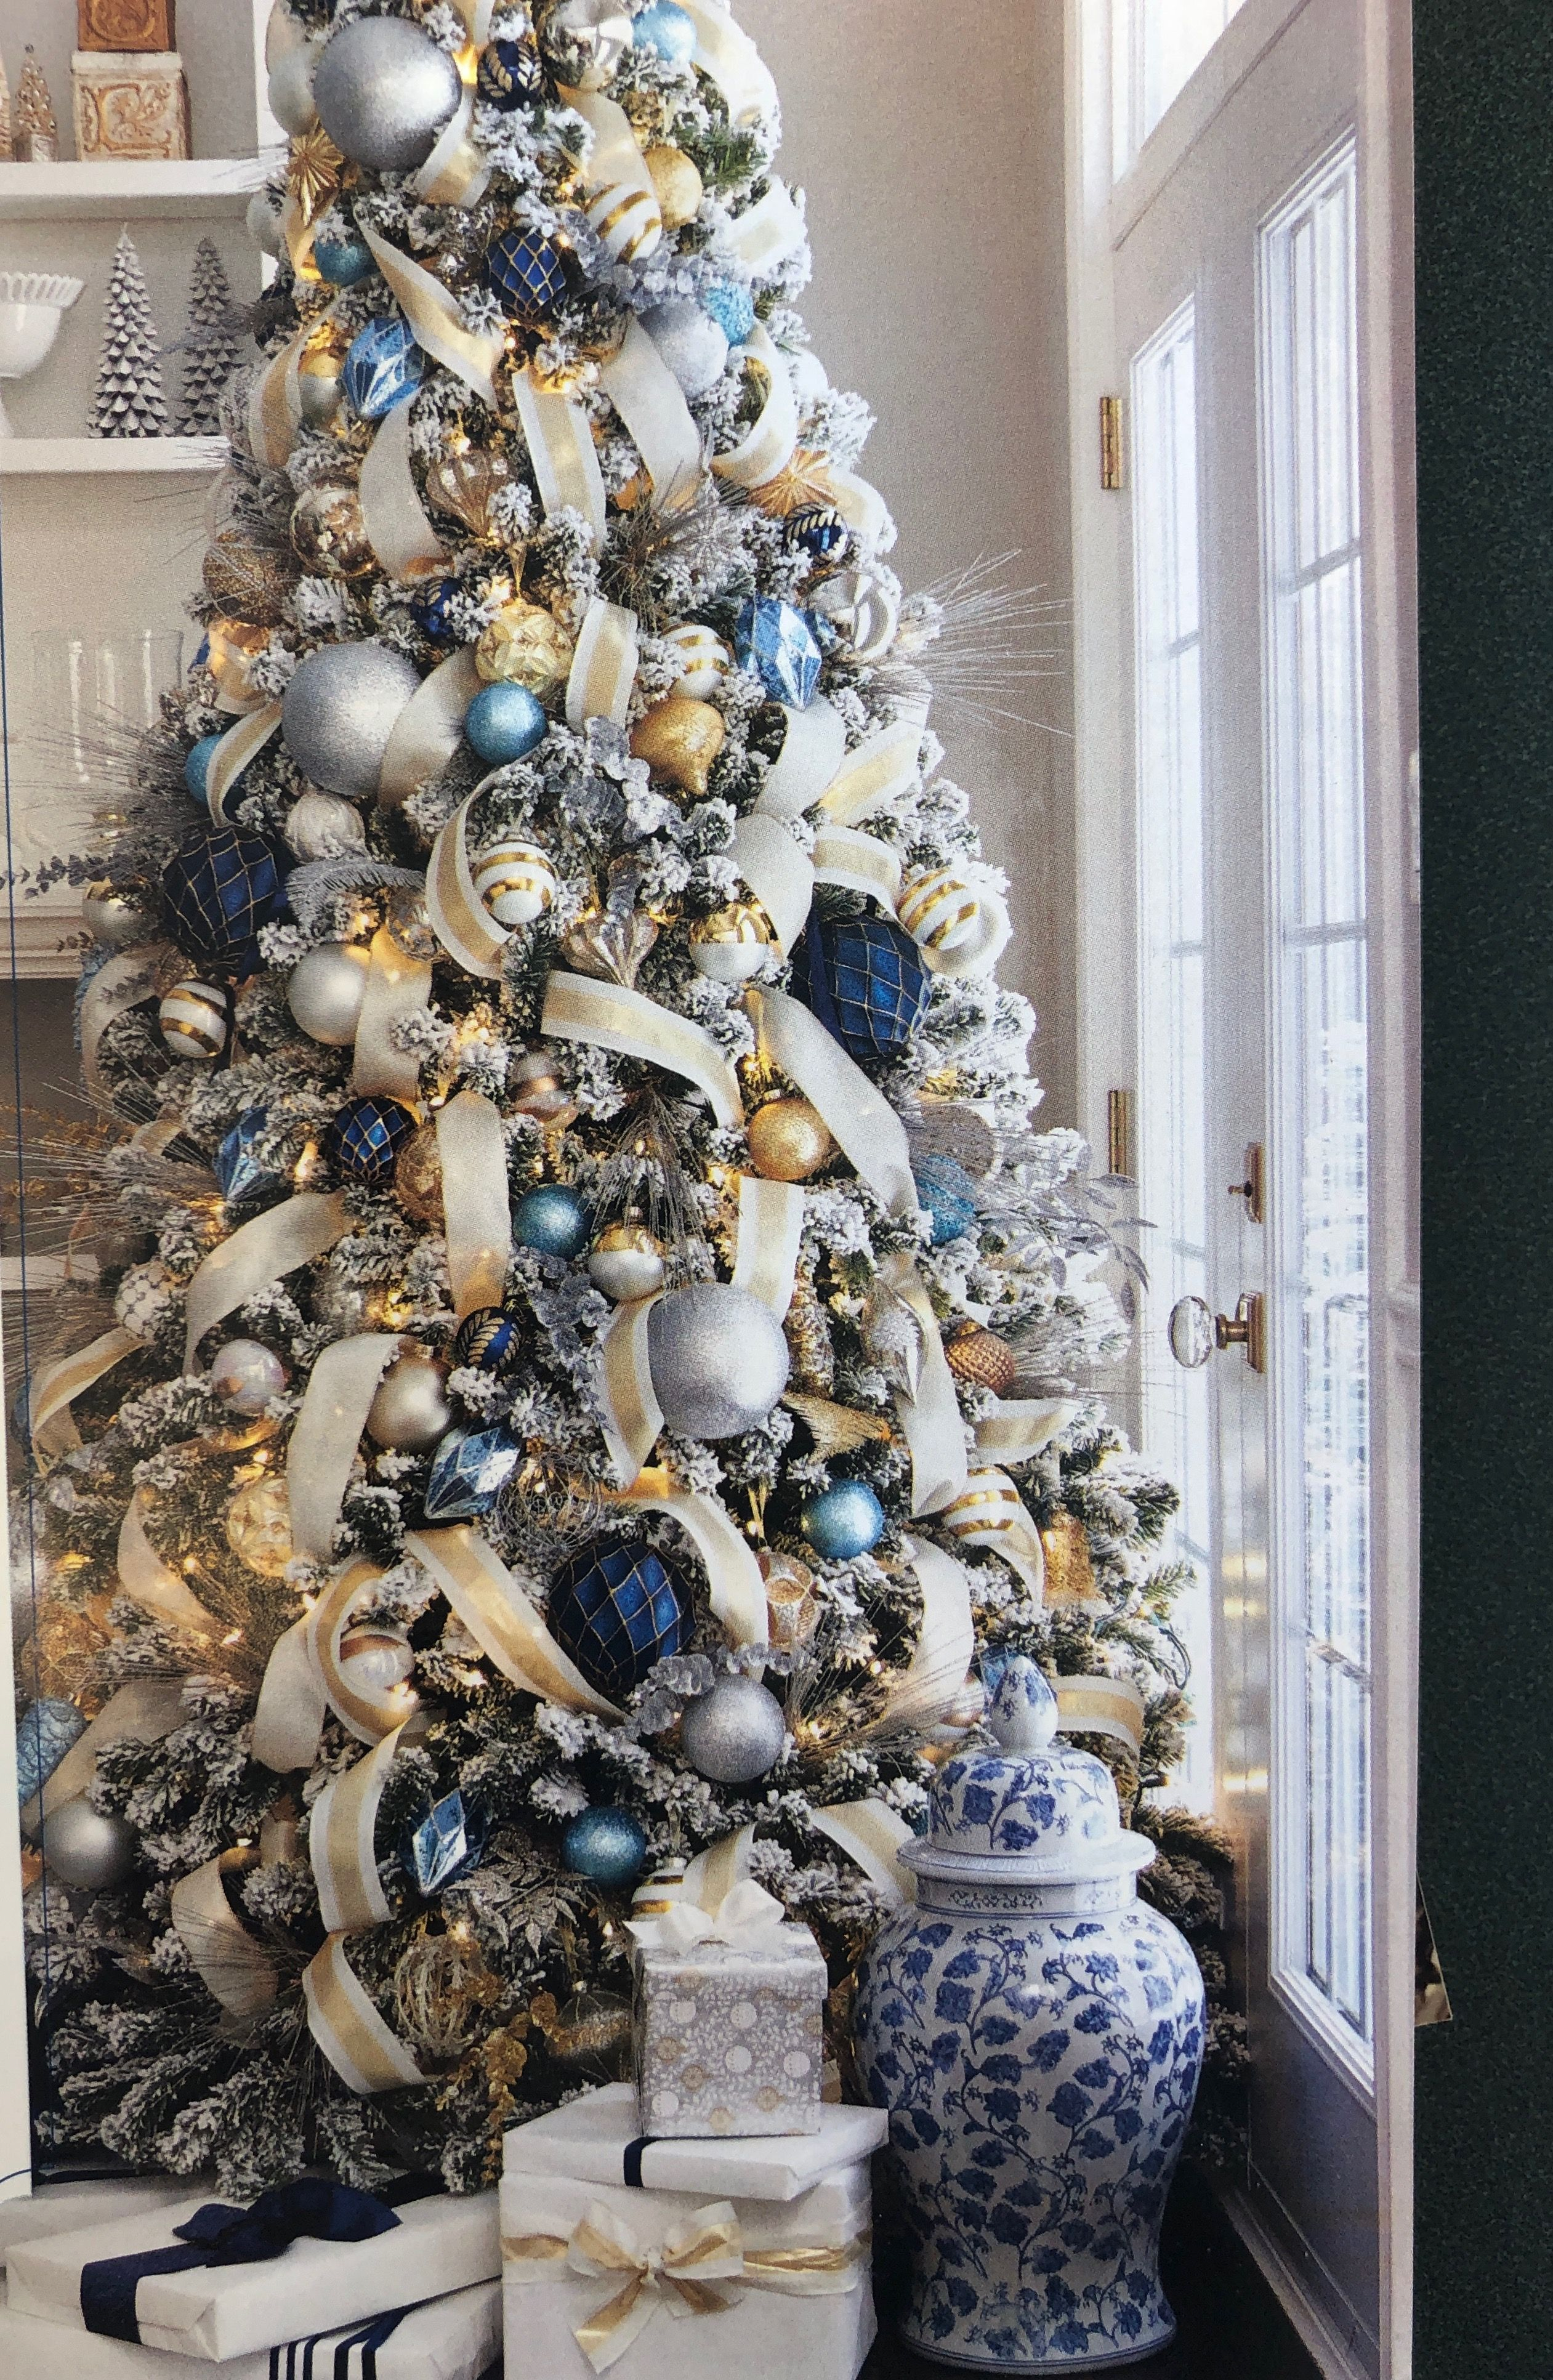 The Ransomed Heart A Collection Of Devotional Readings By John Eldredge 0785207066 9780785207061 In 2020 Elegant Christmas Trees Christmas Tree Inspiration Blue Christmas Tree Decorations